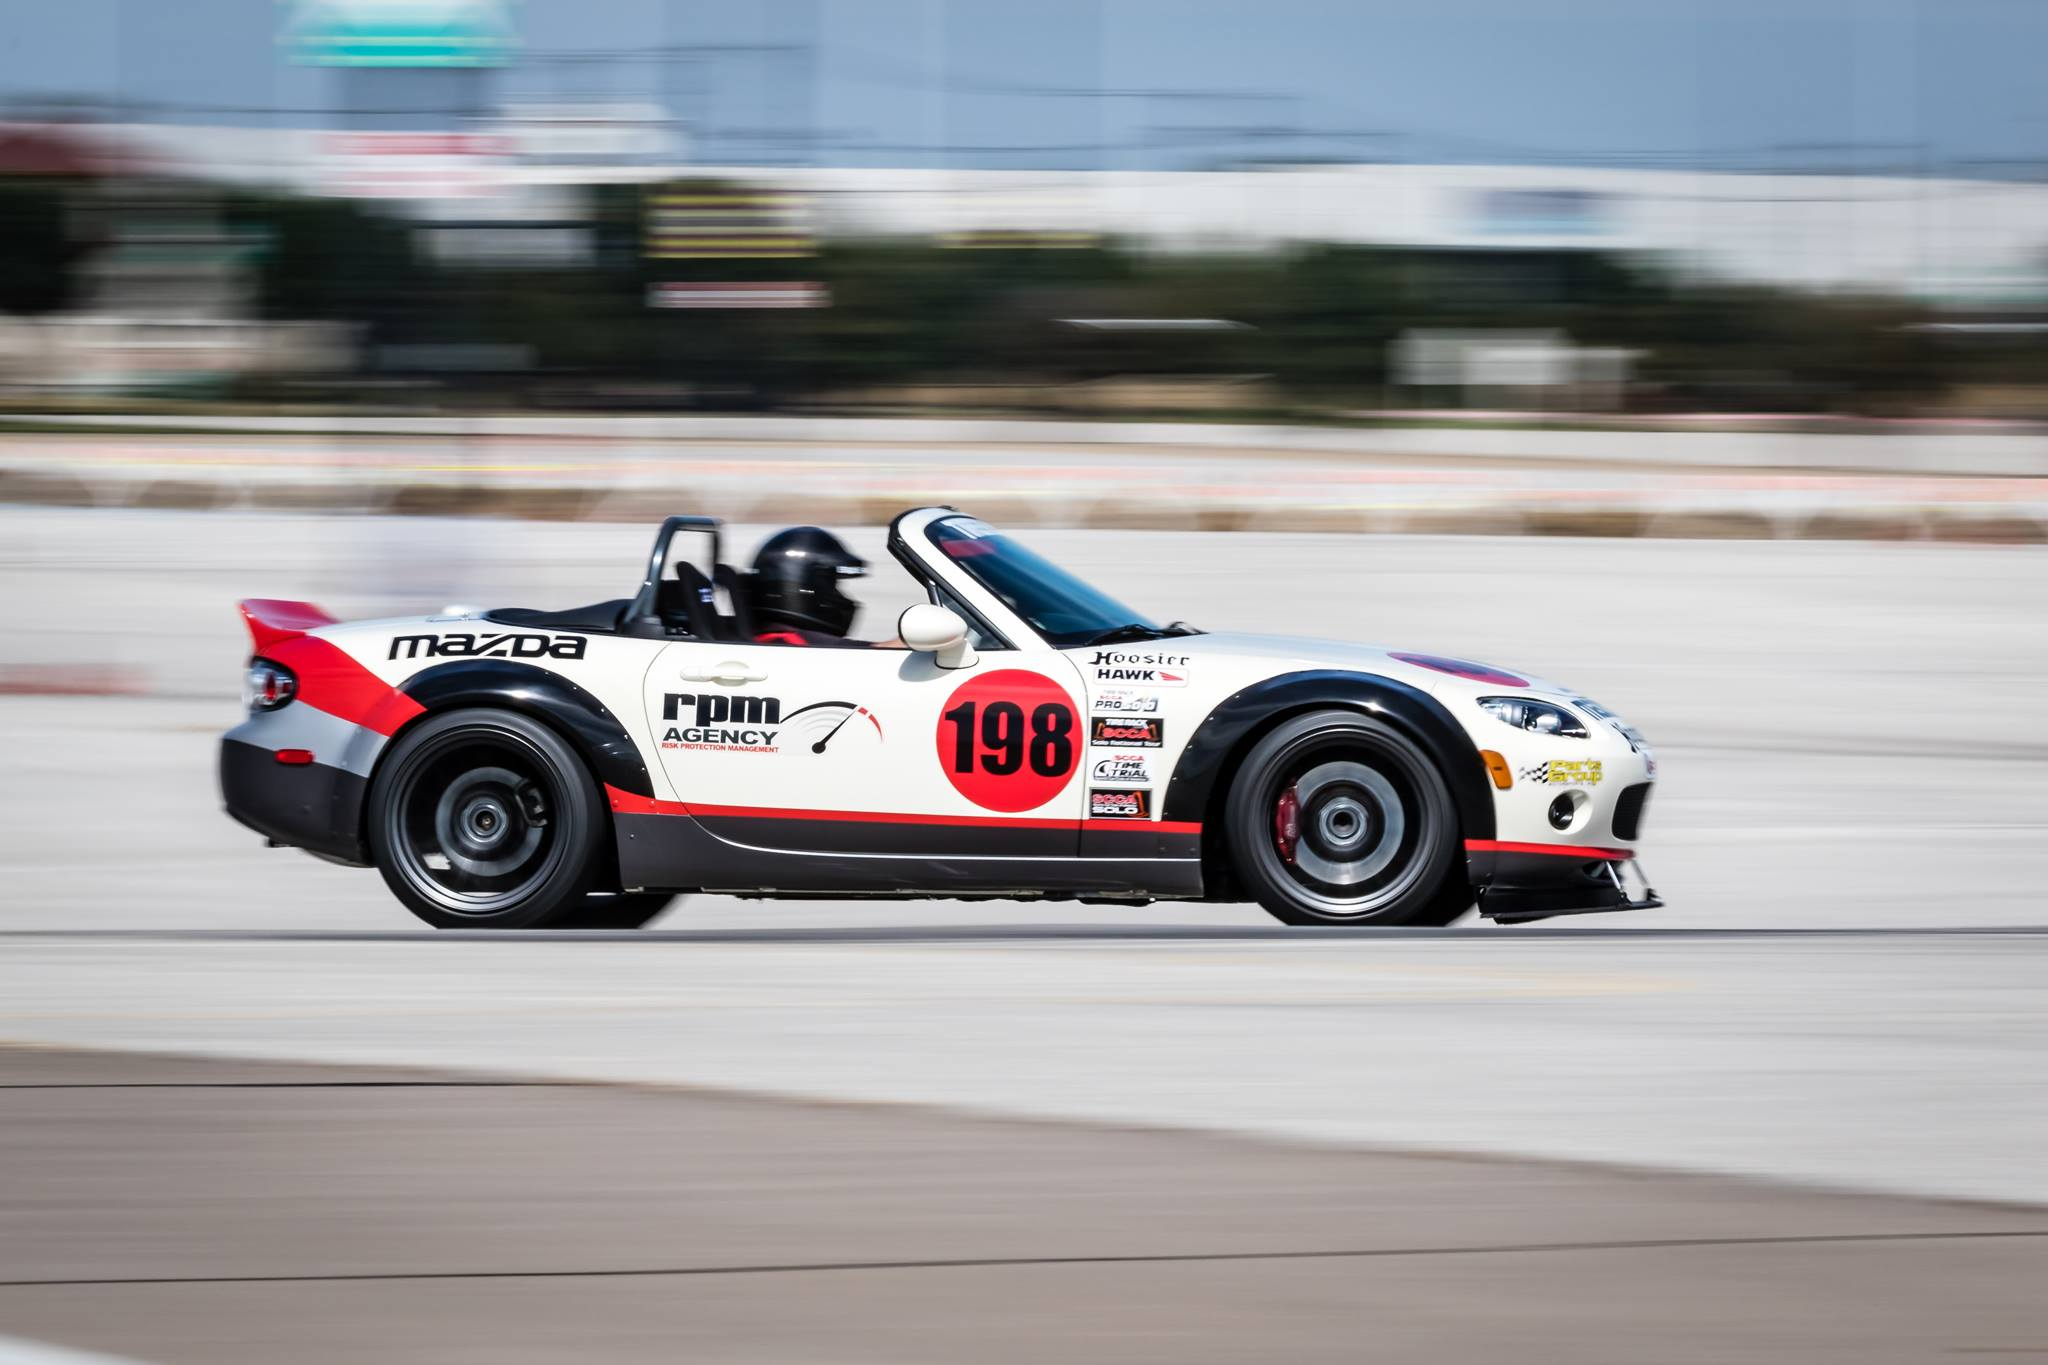 RPM Agency Mazda Race Car racing on track